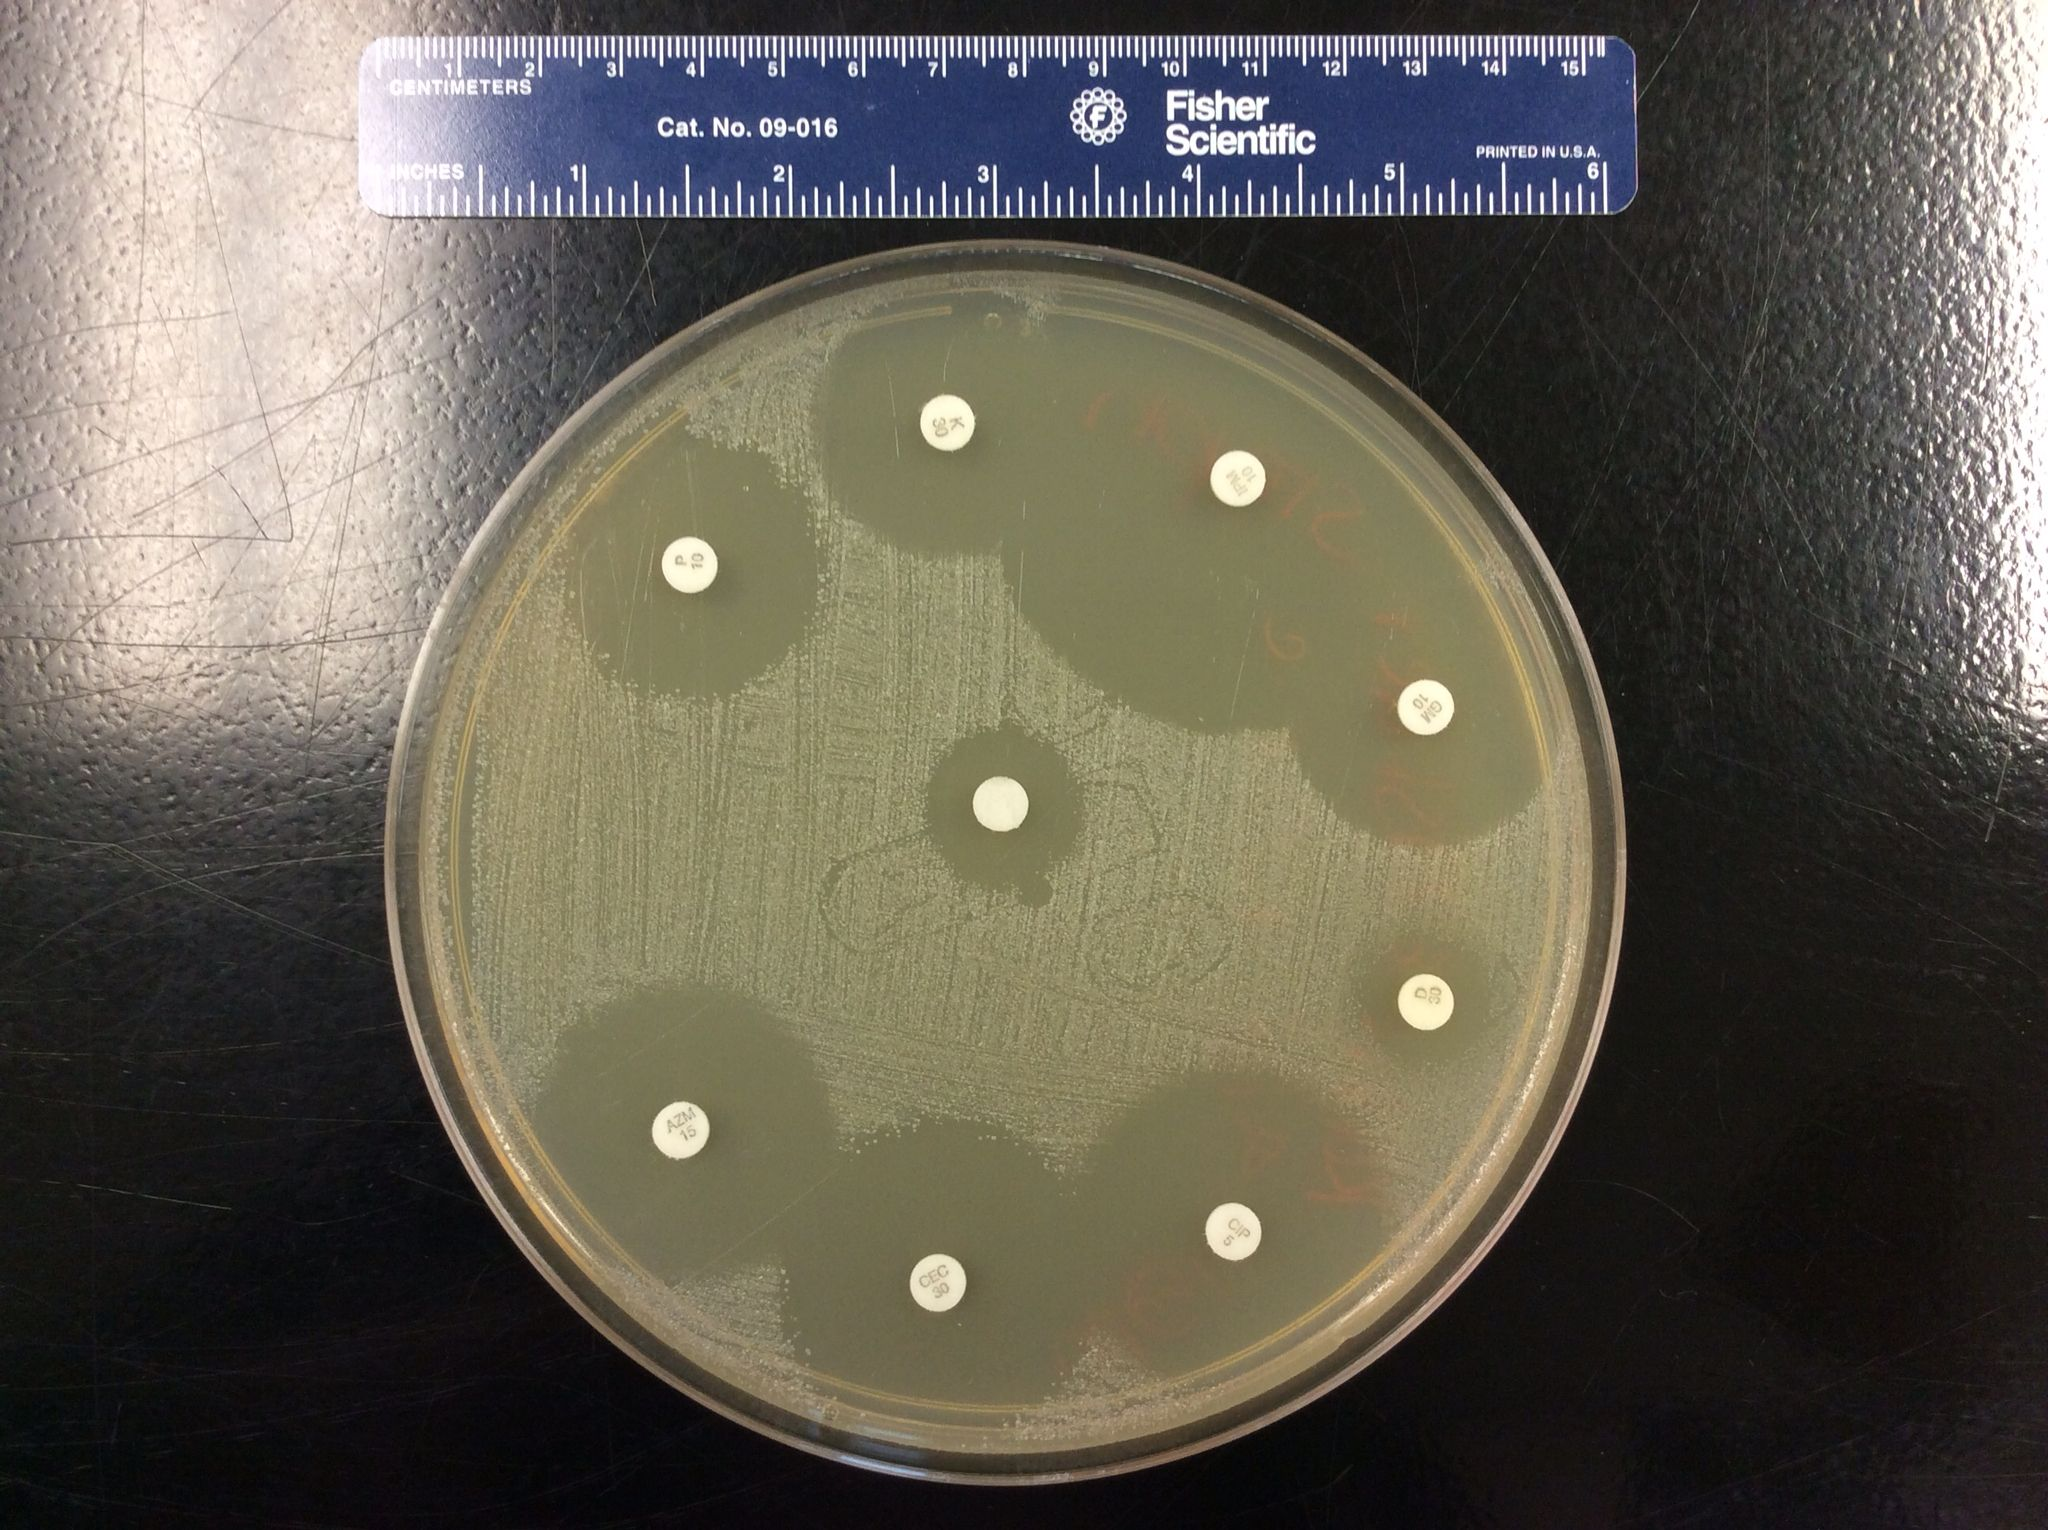 Kirby-Bauer/ Disk Diffusion Test with Staphylococcus epidermidis ...